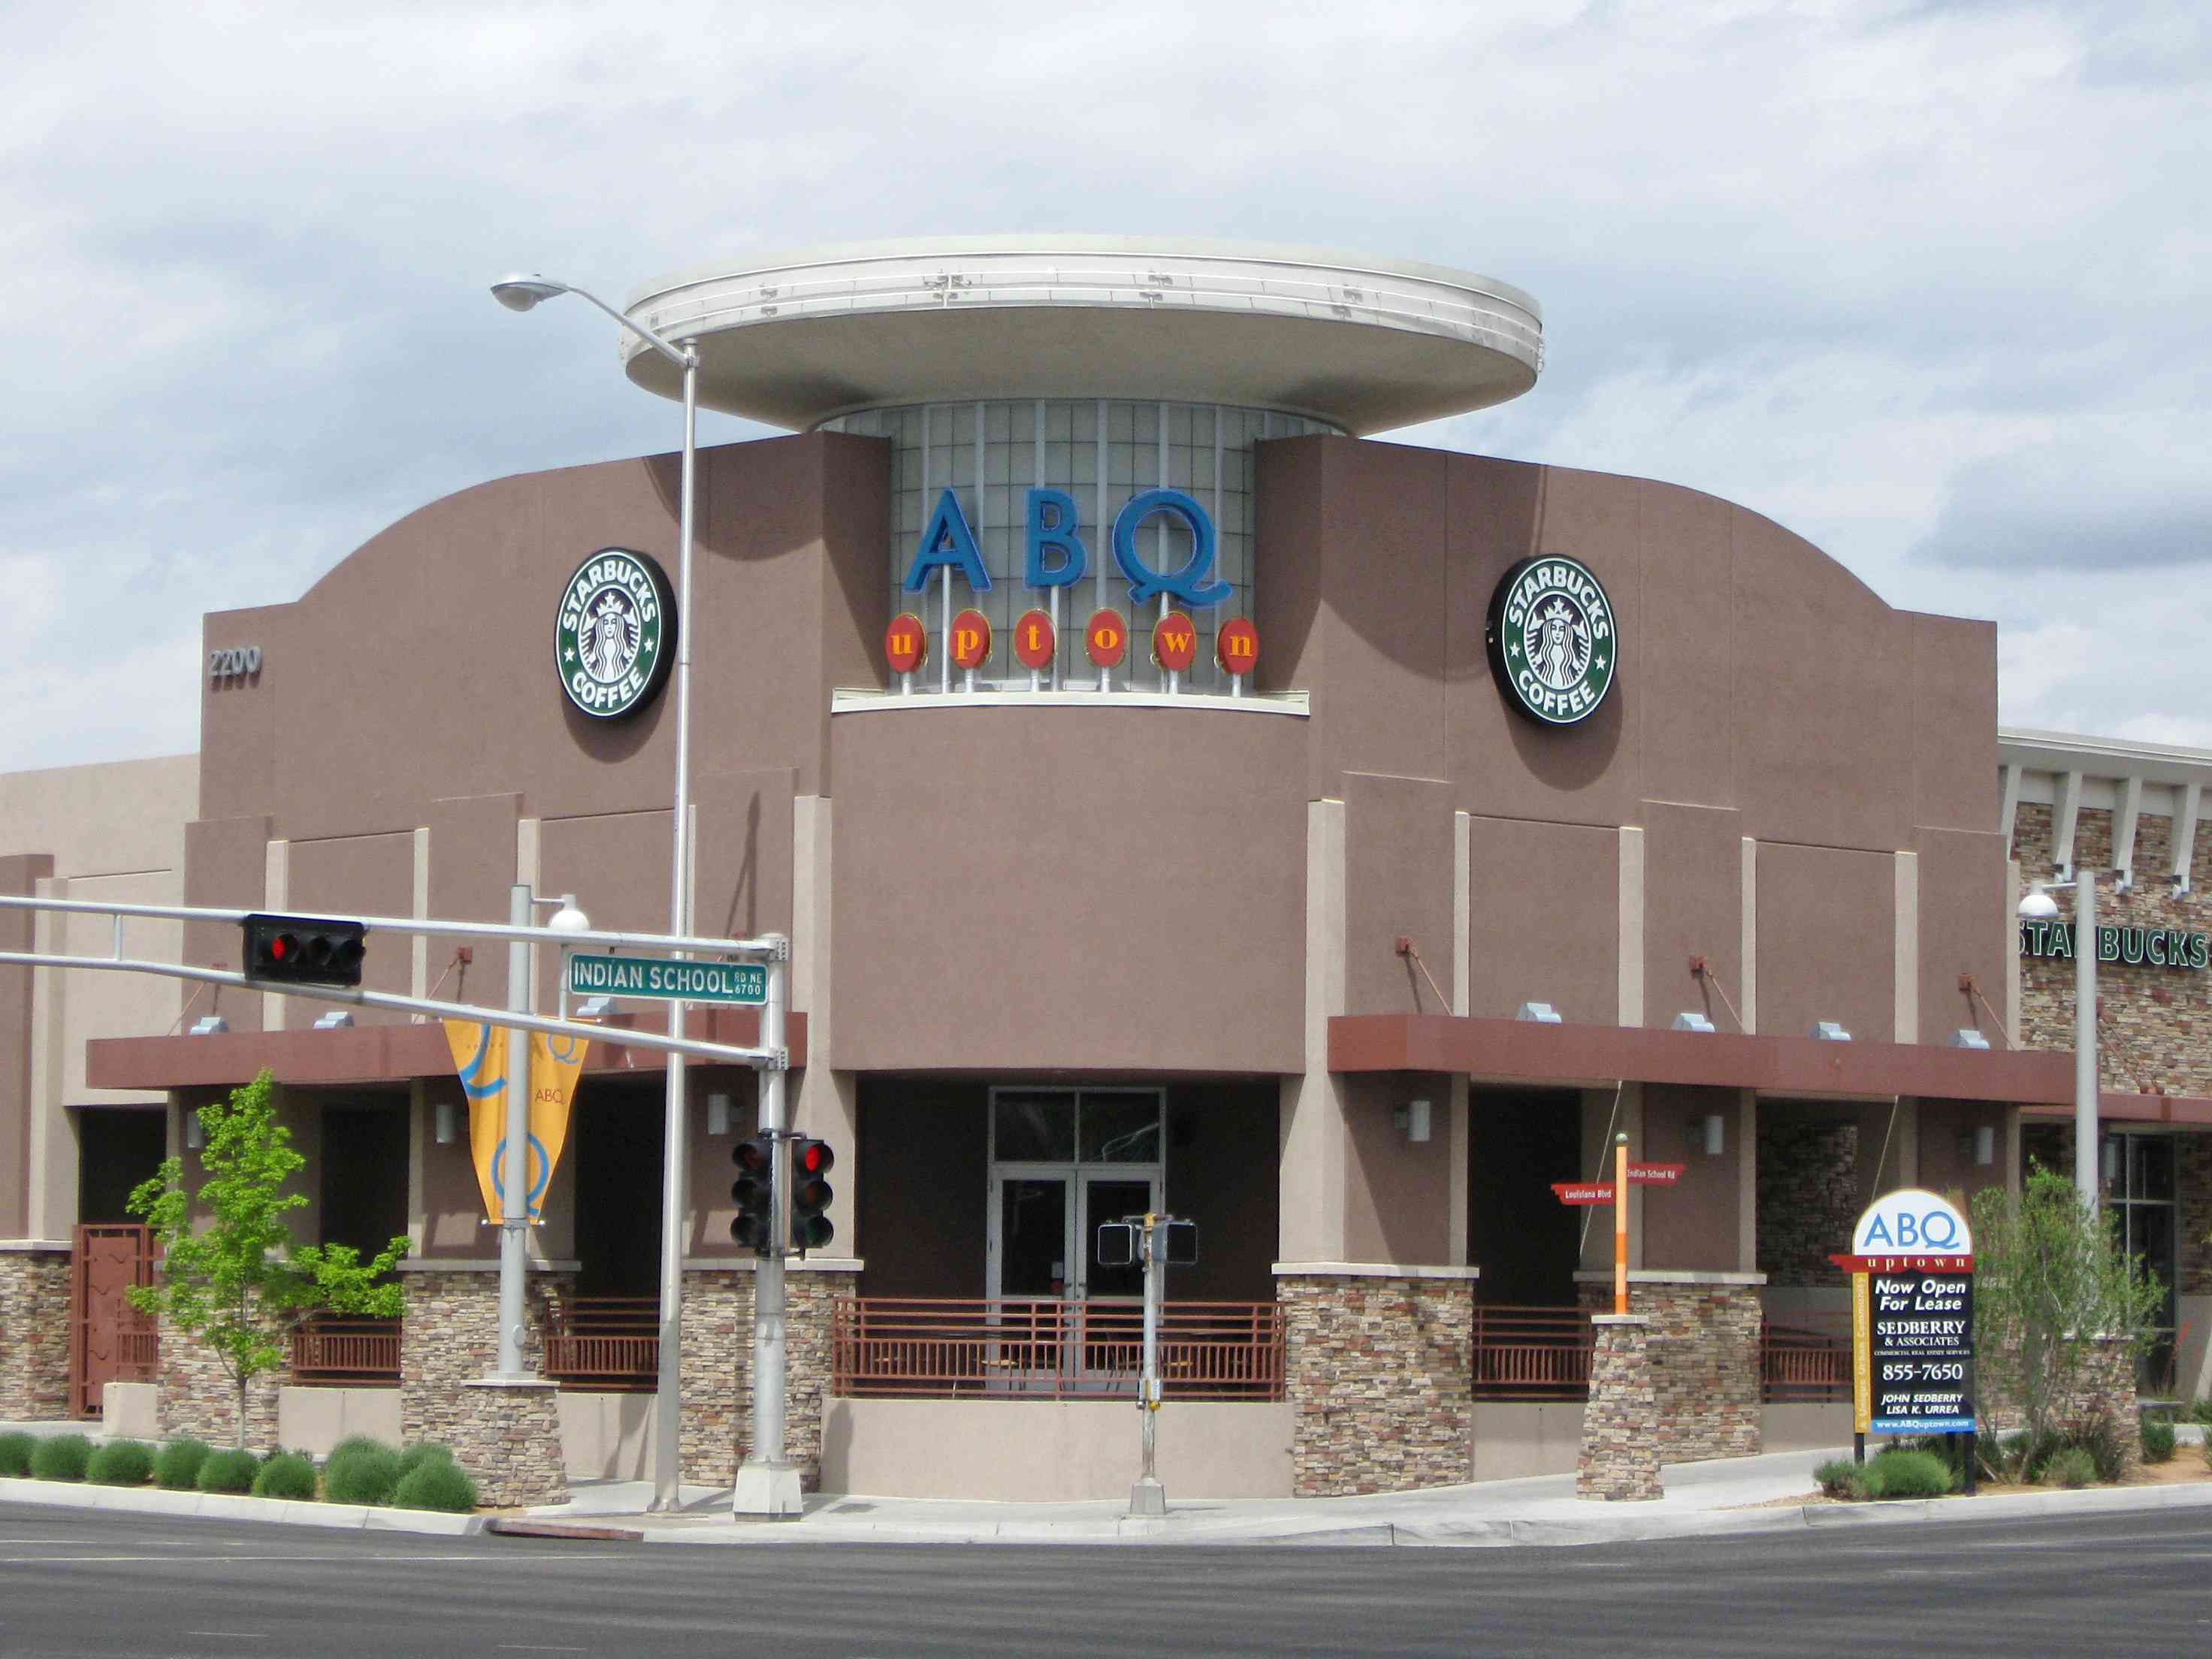 Corner display of the ABQ Uptown shopping mall